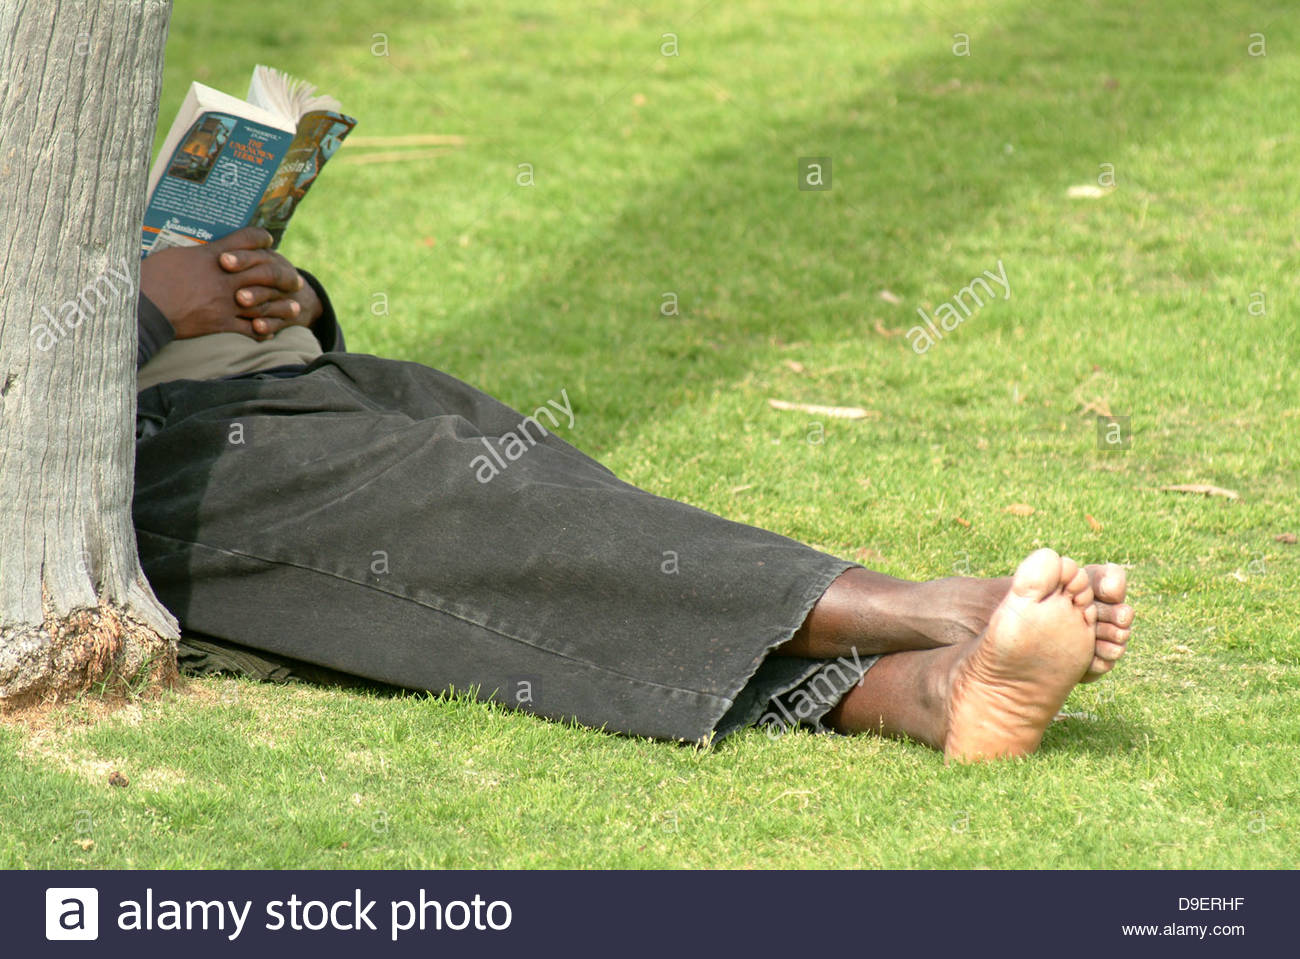 african america barefoot black book economy employment grass hobo homeless jobless lying park poor poverty reading - Stock Image